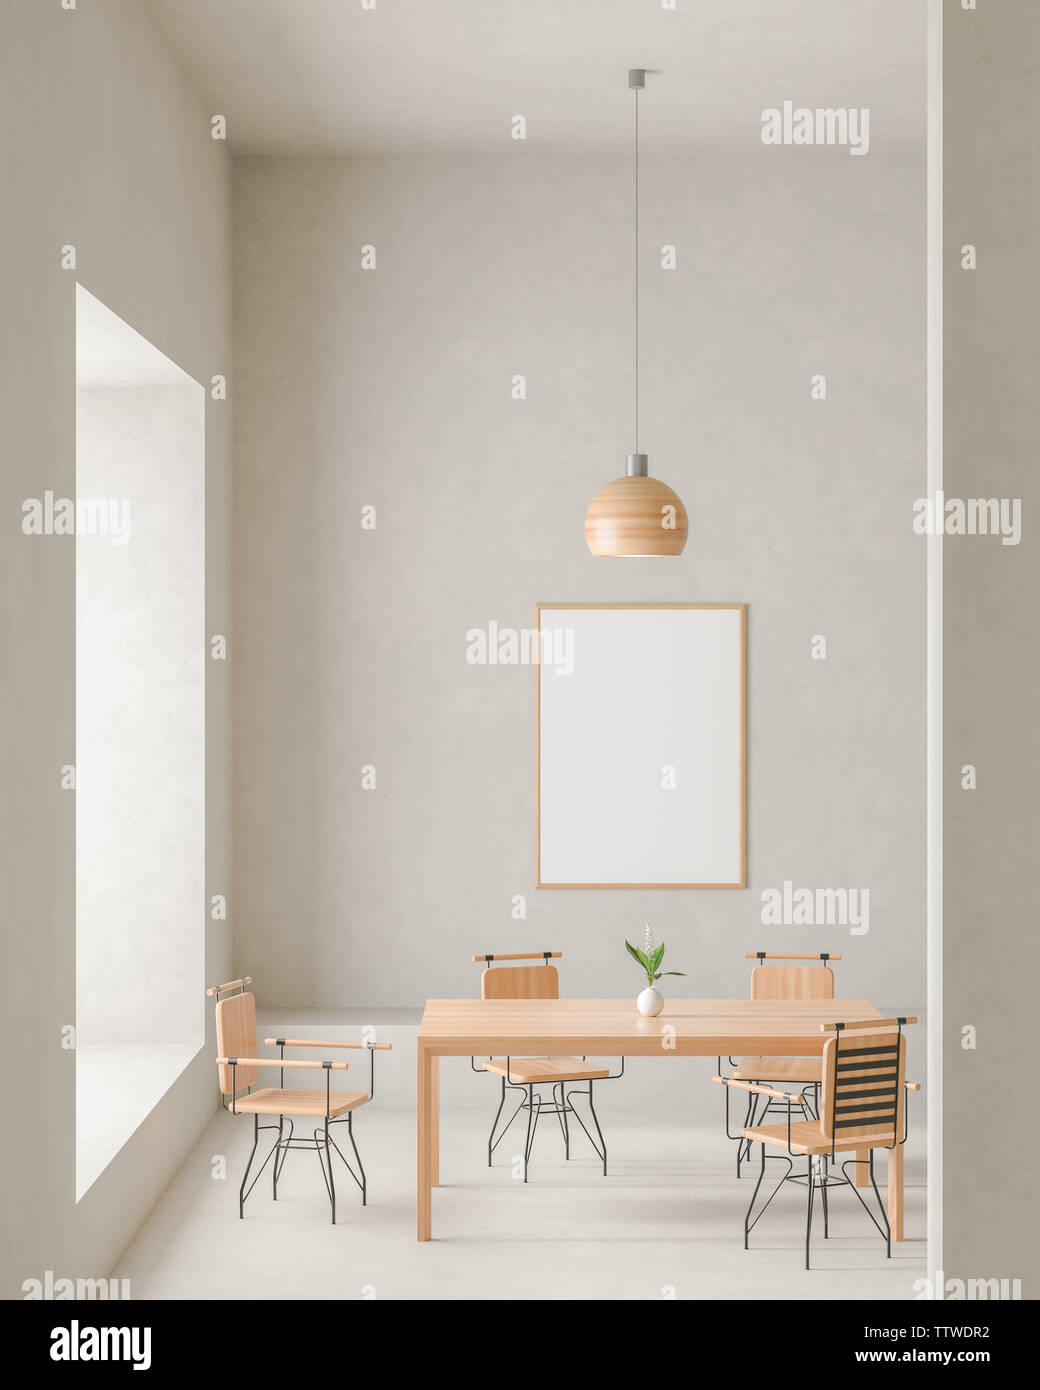 Mock Up Poster Frame In Modern Spacious Dining Room With Concrete Walls Minimalist Dining Room Design 3d Illustration Stock Photo Alamy